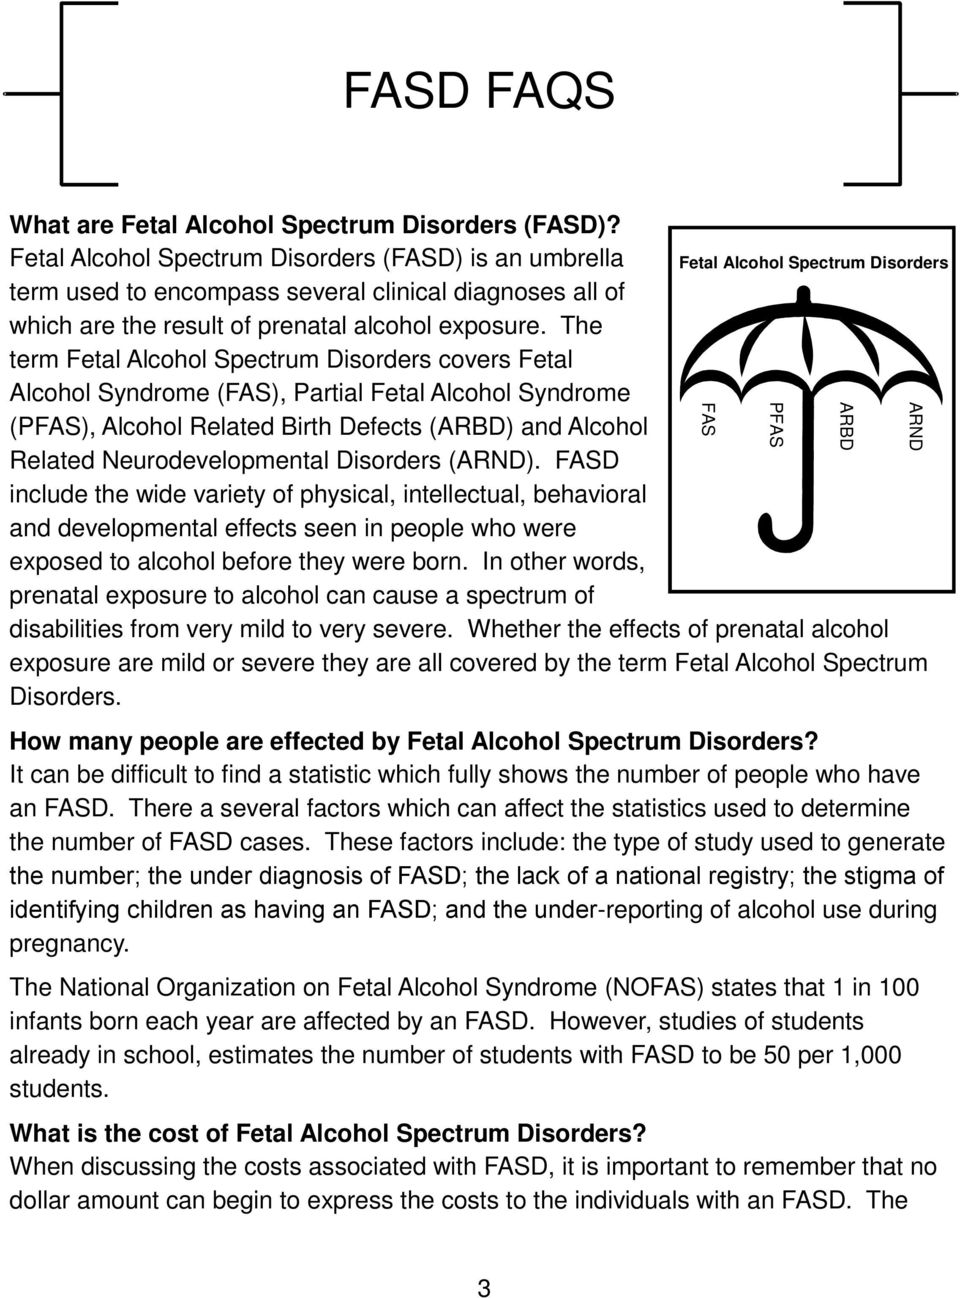 The term Fetal Alcohol Spectrum Disorders covers Fetal Alcohol Syndrome (FAS), Partial Fetal Alcohol Syndrome (PFAS), Alcohol Related Birth Defects (ARBD) and Alcohol Related Neurodevelopmental